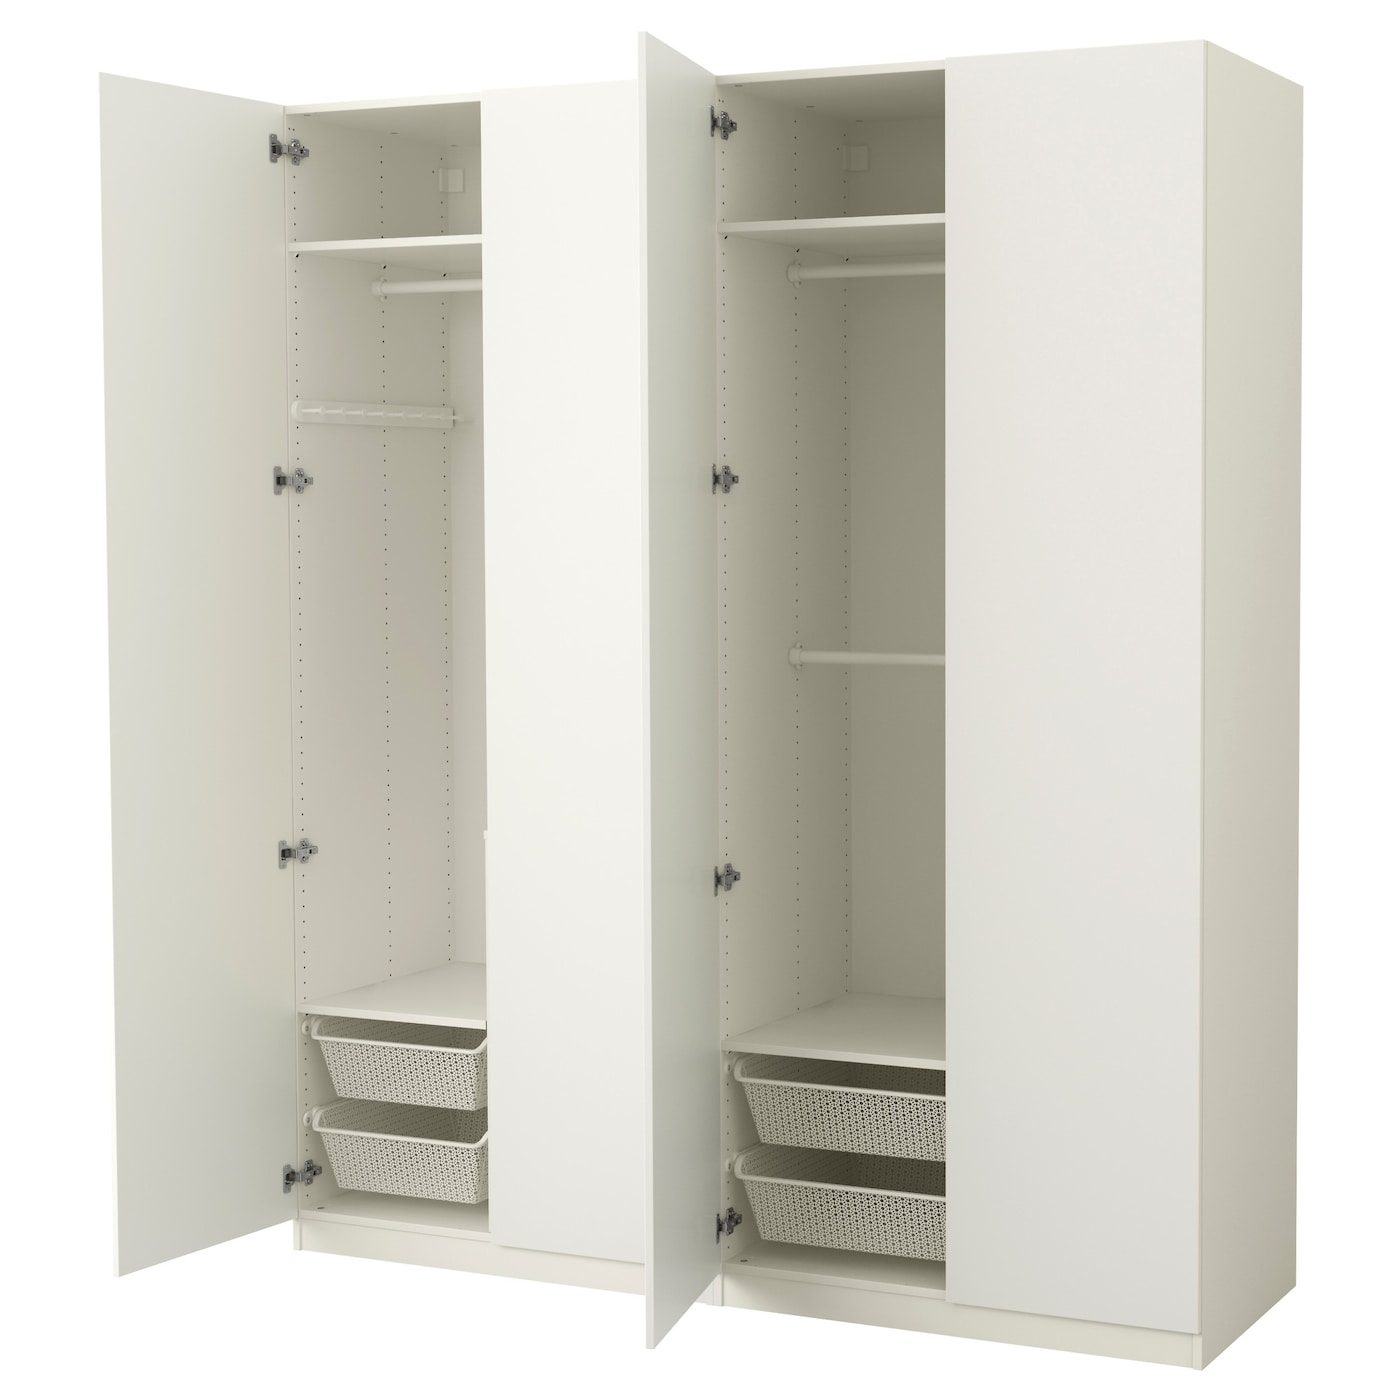 pax wardrobe white tanem white 200x60x236 cm ikea. Black Bedroom Furniture Sets. Home Design Ideas